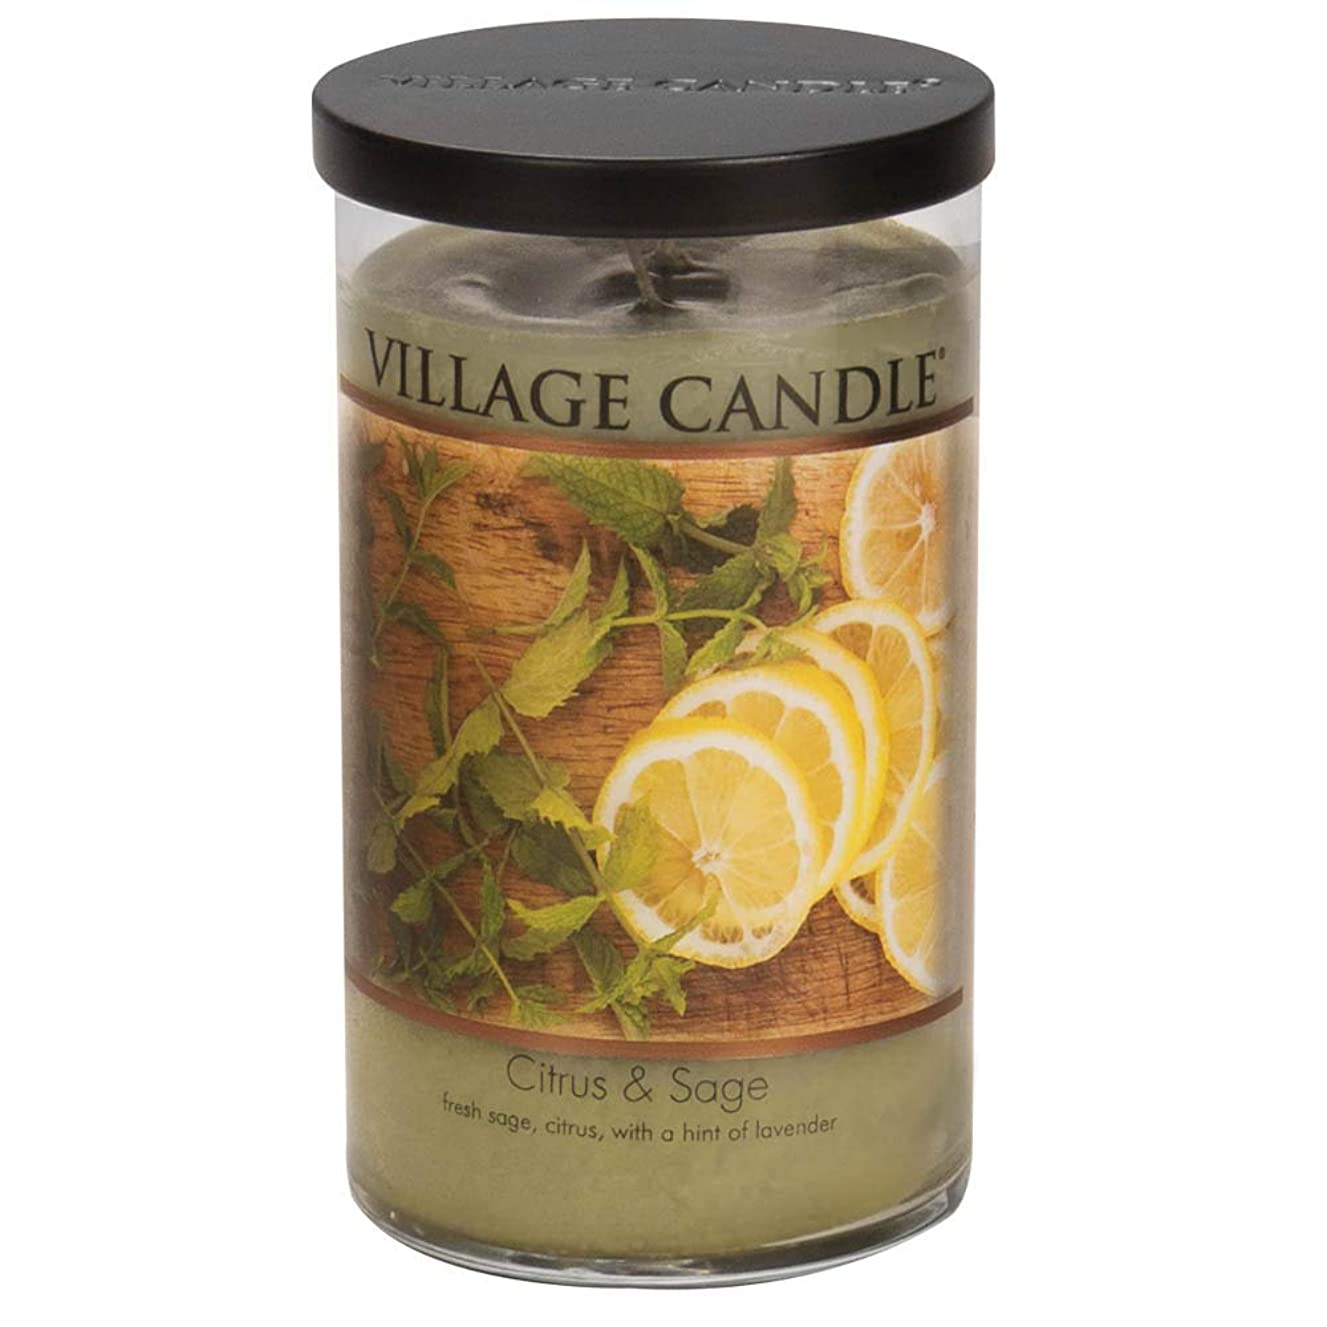 石化する感謝アフリカVillage Candle Citrus & Sage 24?Oz LargeタンブラーScented Candle